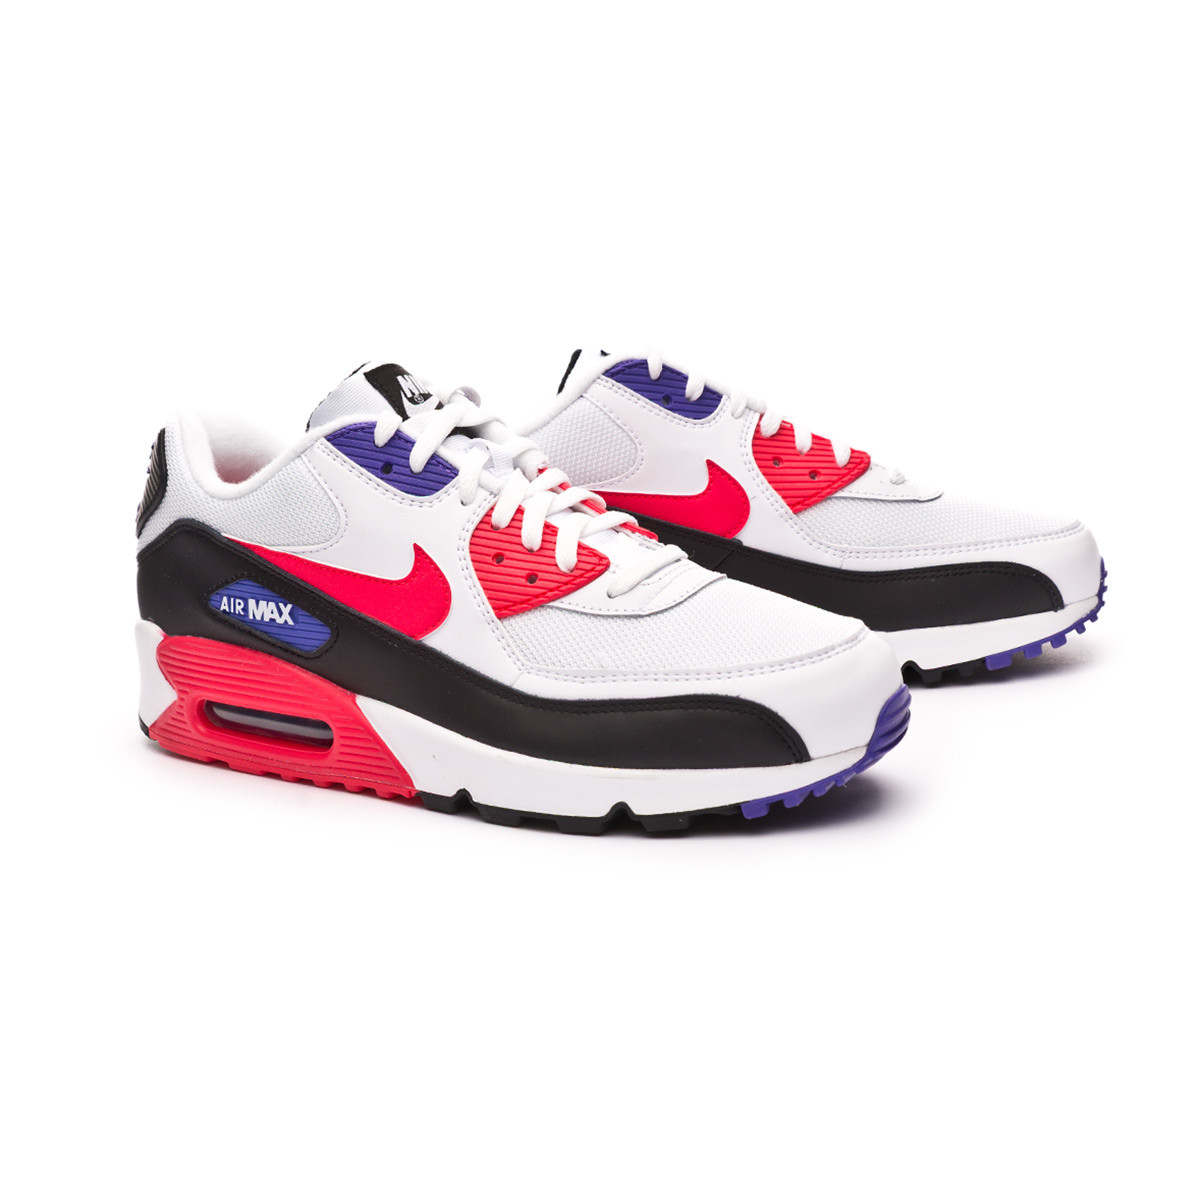 best service ea23e 9a279 Zapatilla Air Max '90 Essential Shoe White-Red orbit-Psychic purple-Black